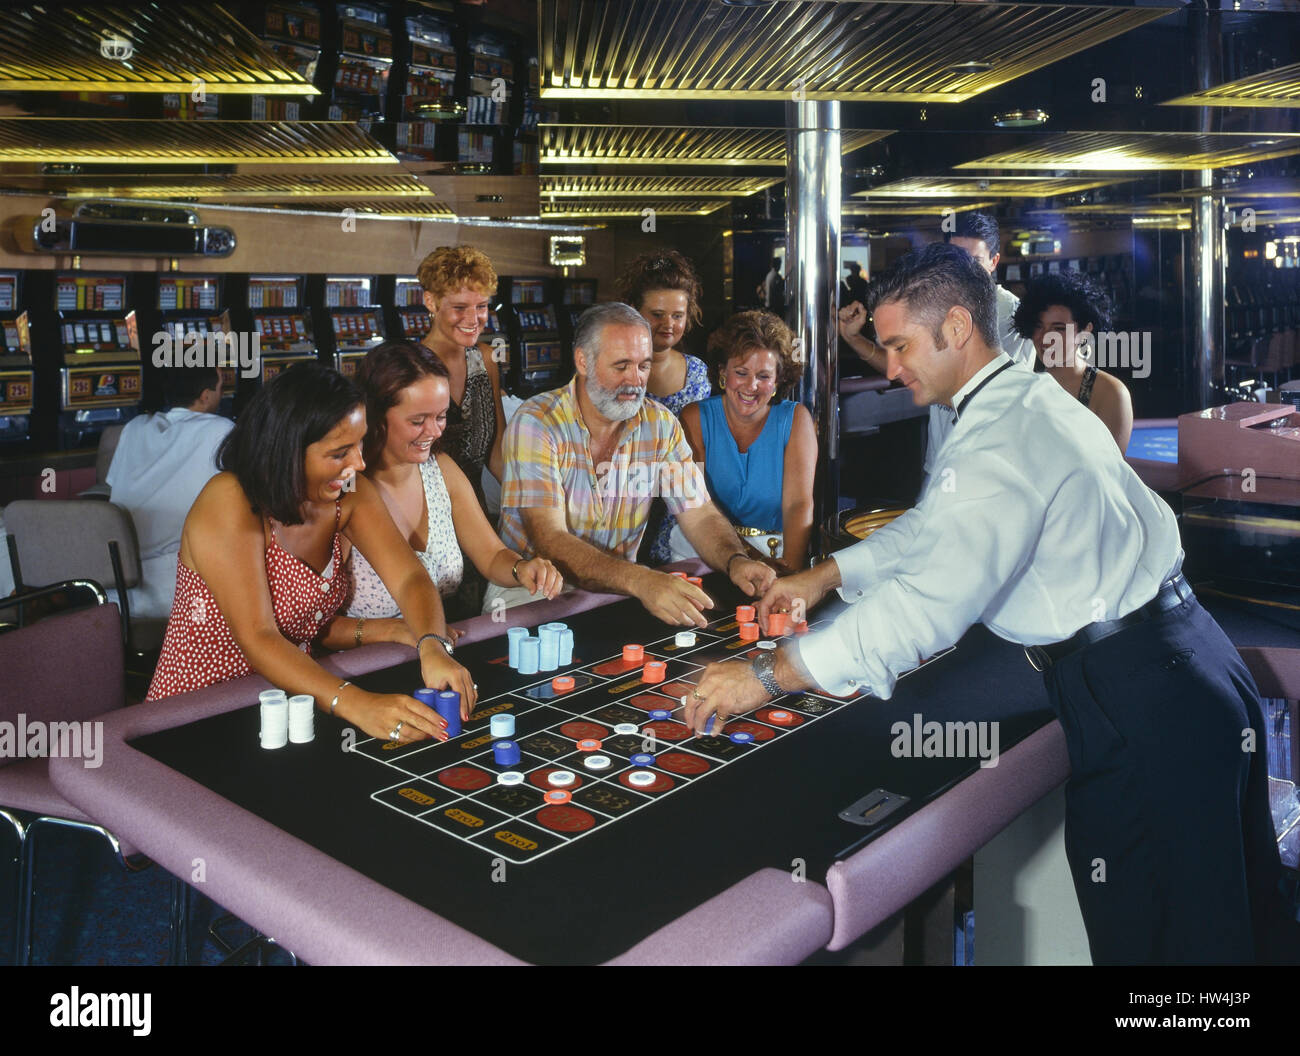 People playing at roulette in a Cruise ship casino - Stock Image